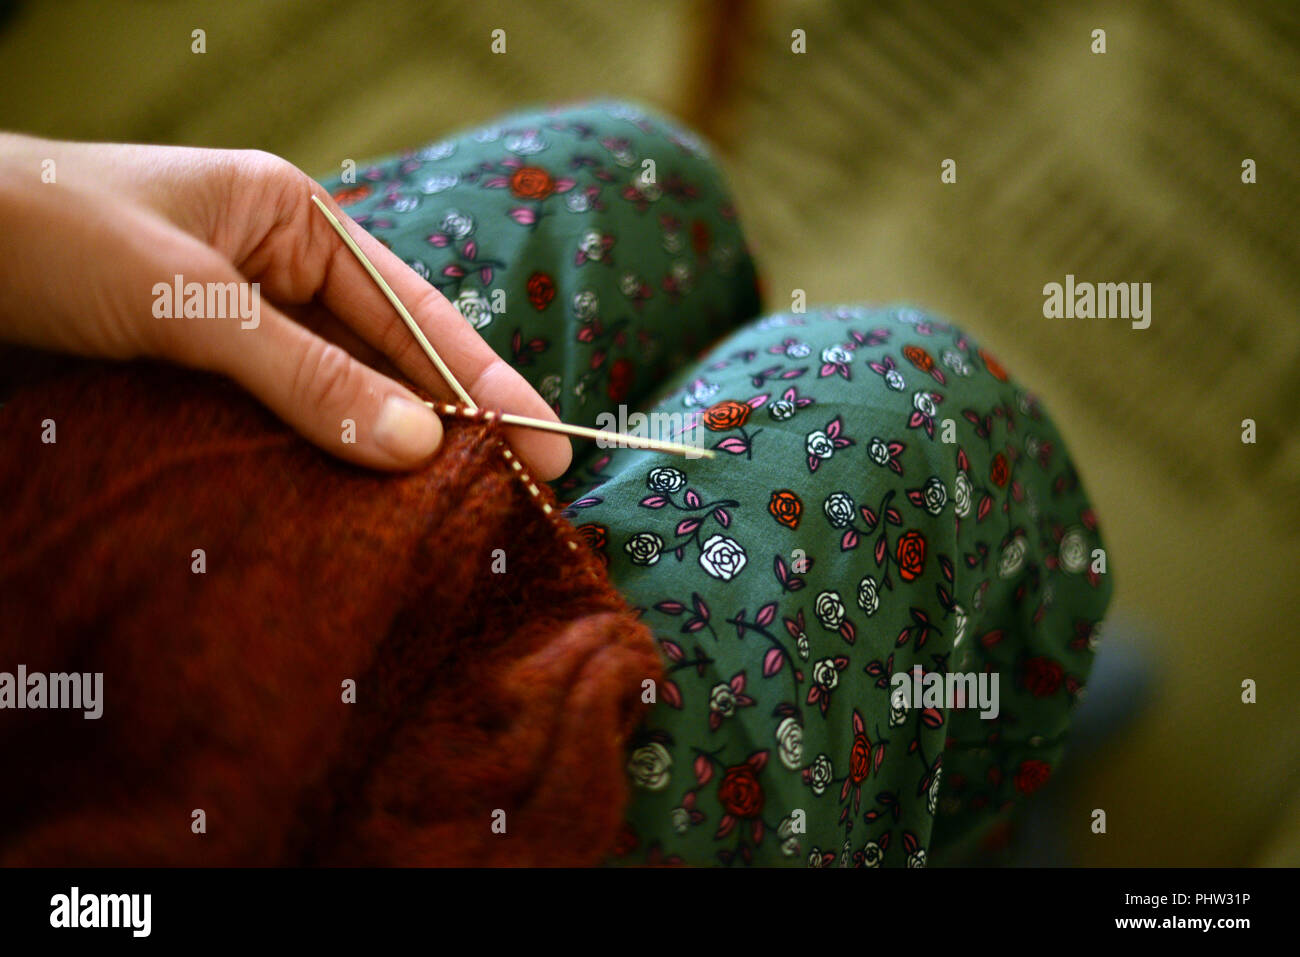 woman holding a knitting needles with knitted handwork in copper color - Stock Image